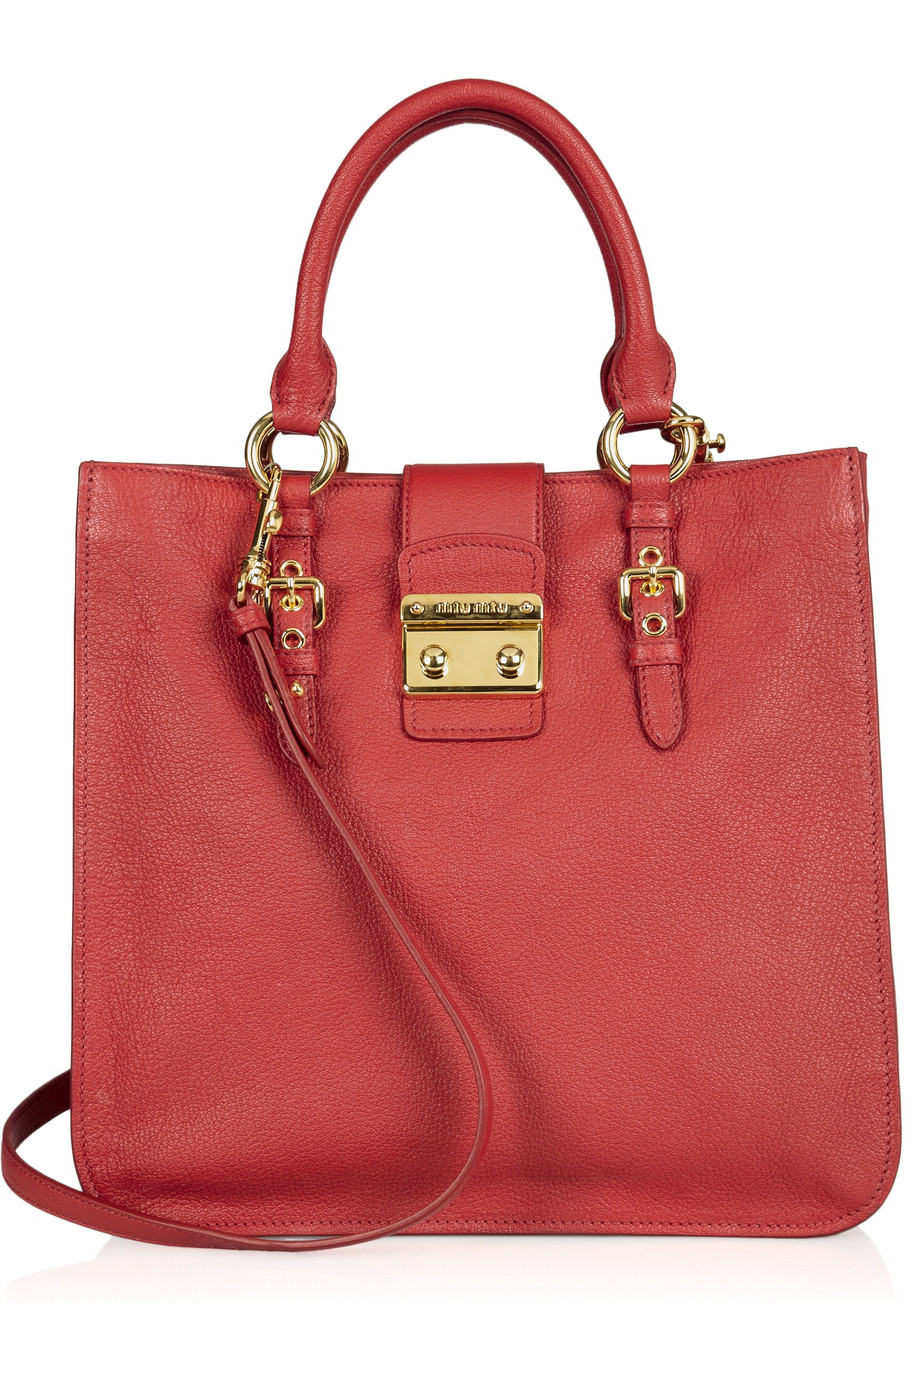 lyst miu miu madras textured leather tote in red. Black Bedroom Furniture Sets. Home Design Ideas